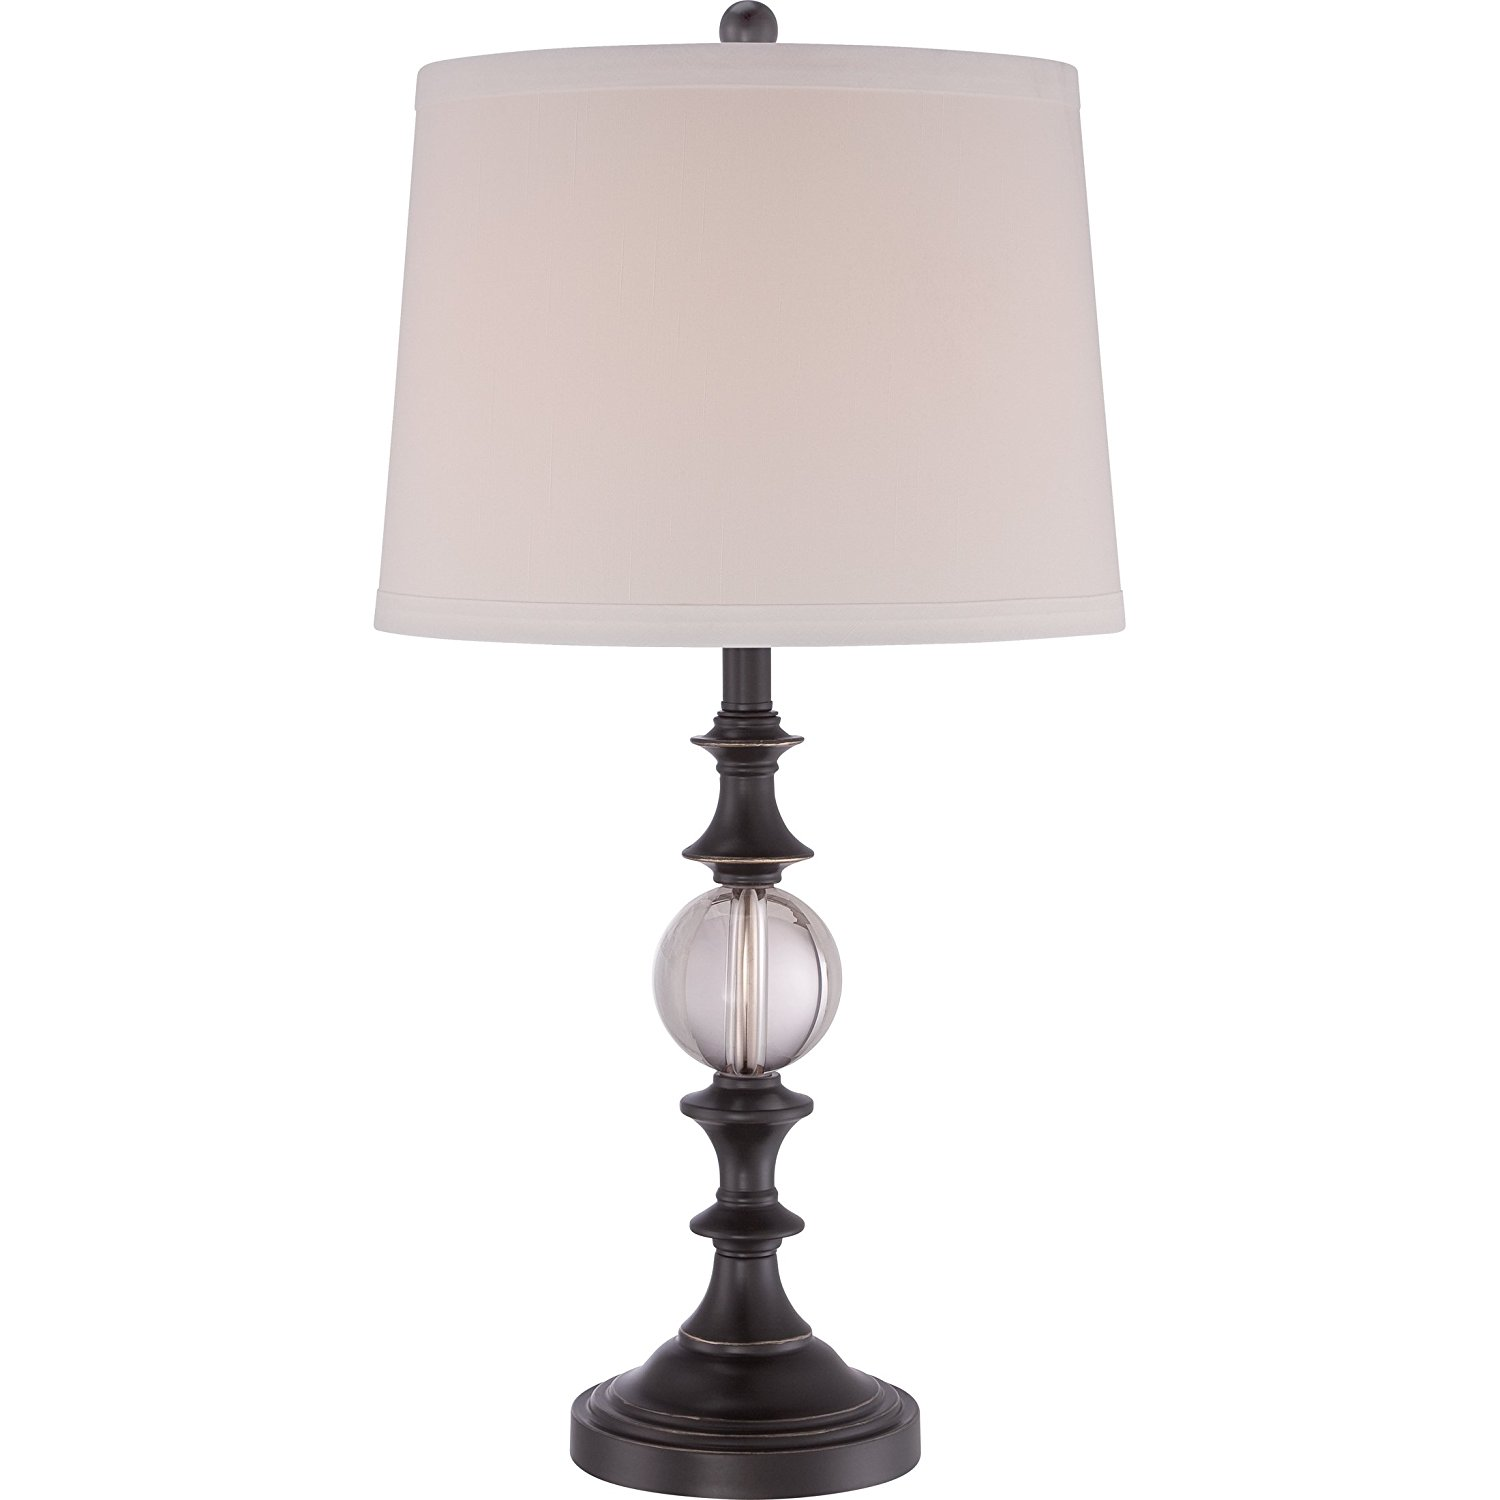 Quoizel Q1634TPN 1-Light Quoizel Portable Lamp Table Lamp in Palladian Bronze